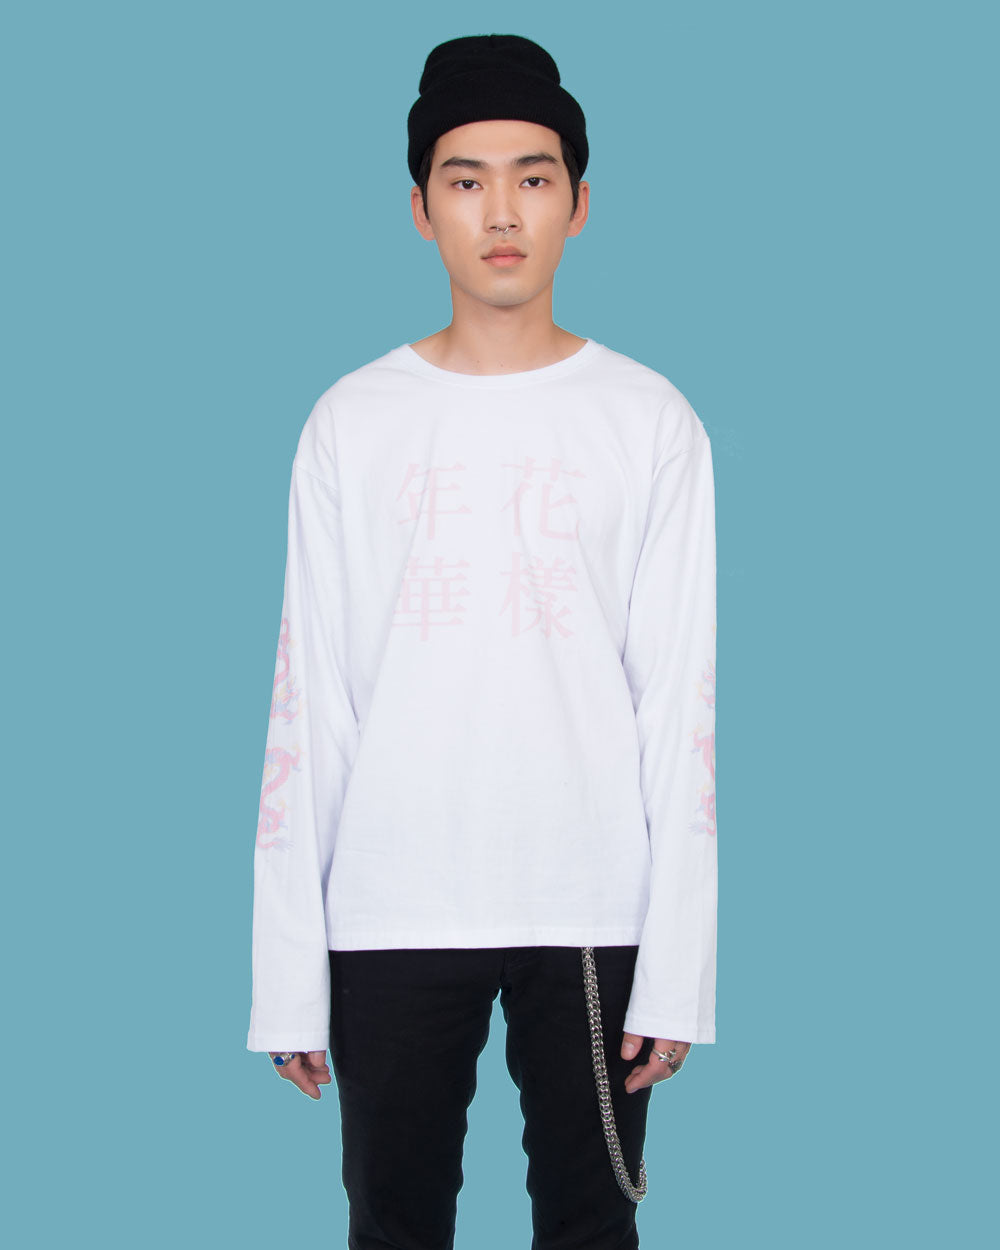 IN THE MOOD FOR LOVE LONG SLEEVE WHITE T-SHIRT